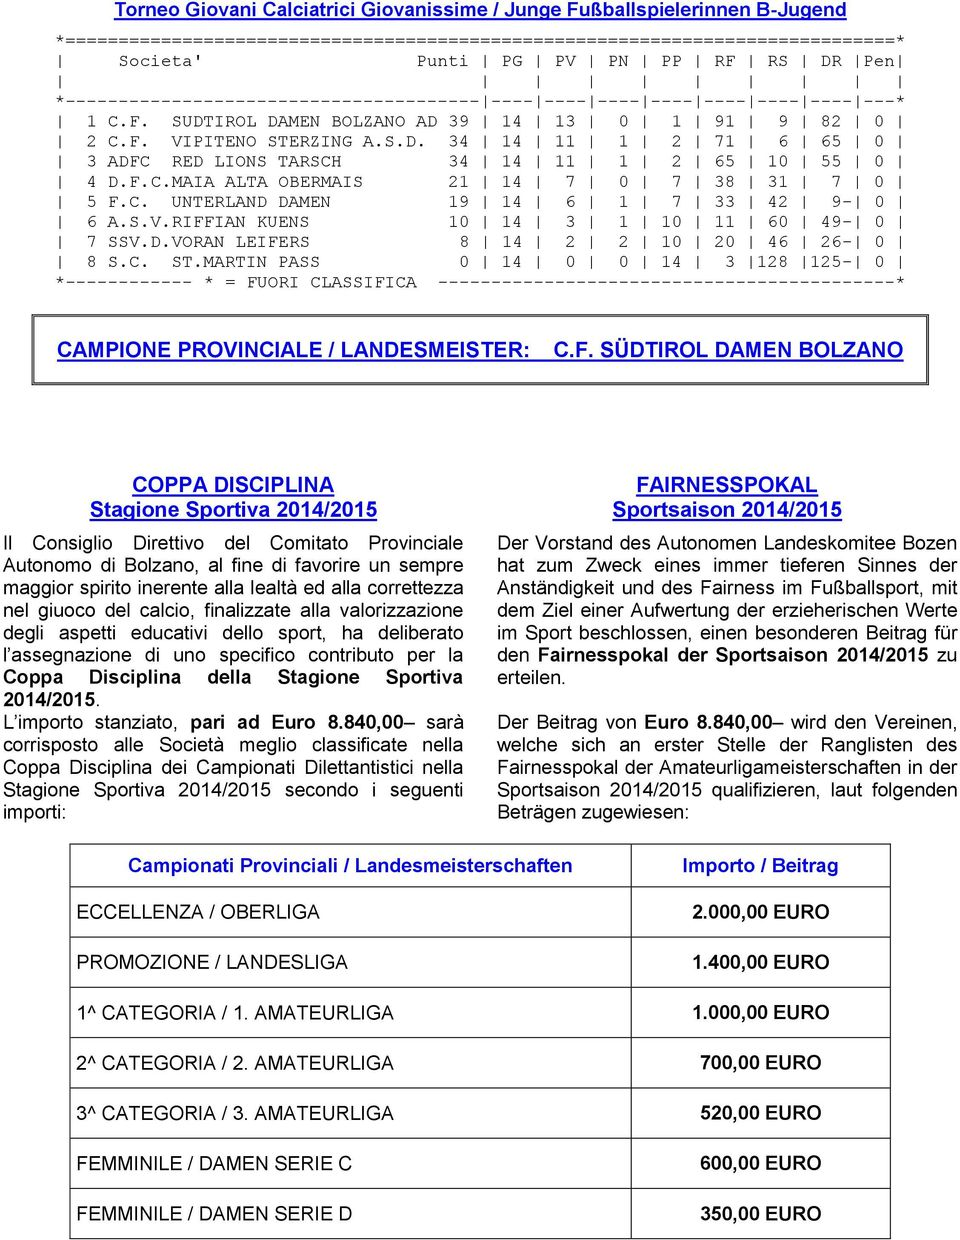 MARTIN PASS 0 14 0 0 14 3 128 125-0 CAMPIONE PROVINCIALE / LANDESMEISTER: C.F.